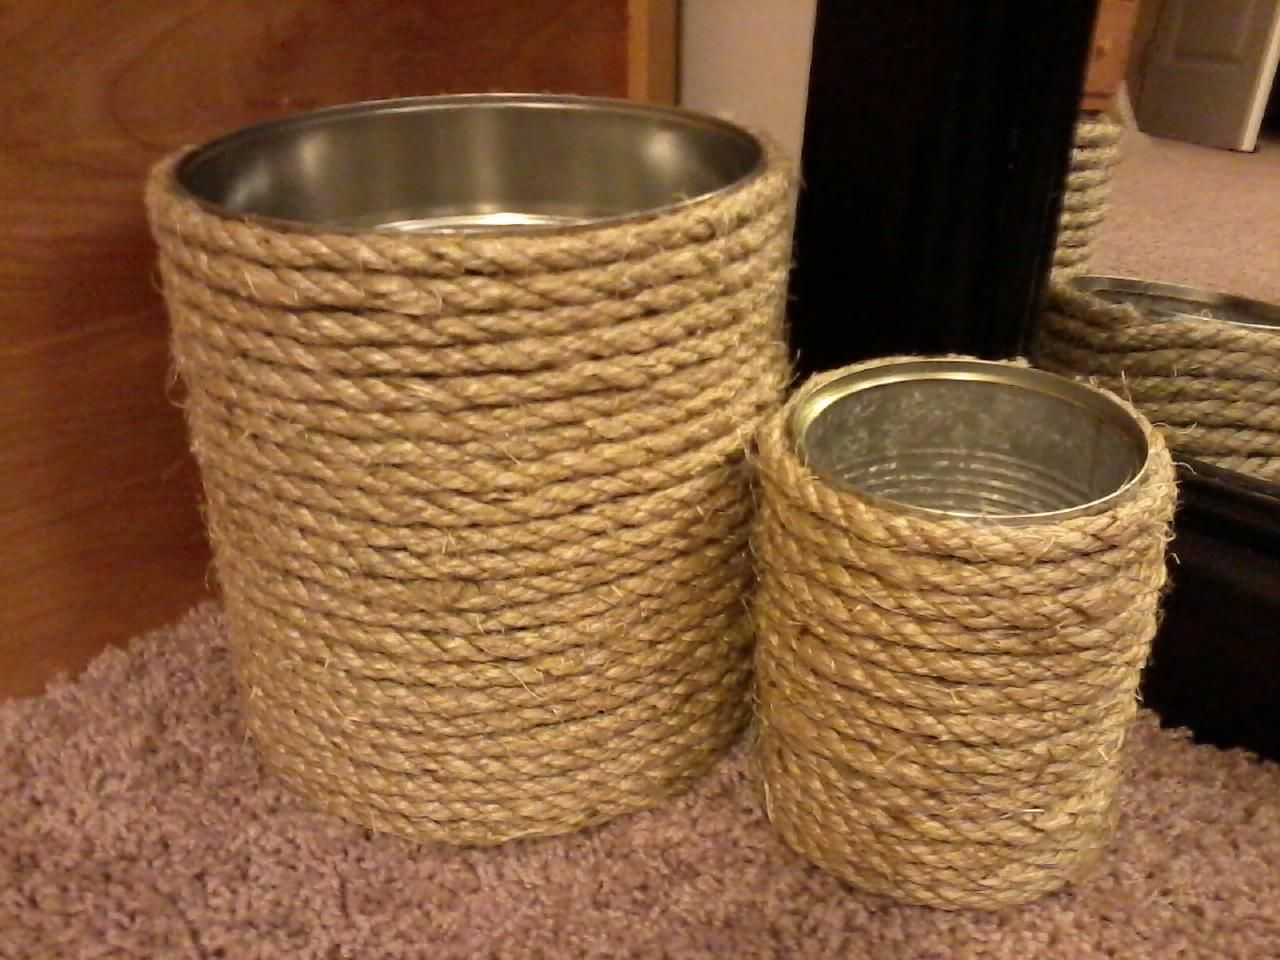 Use Hot Glue To Glue Sisal Rope Around A Metal Tin Can For This Neat Home Decor Storage Container Sisal Rope Diy Box Canning